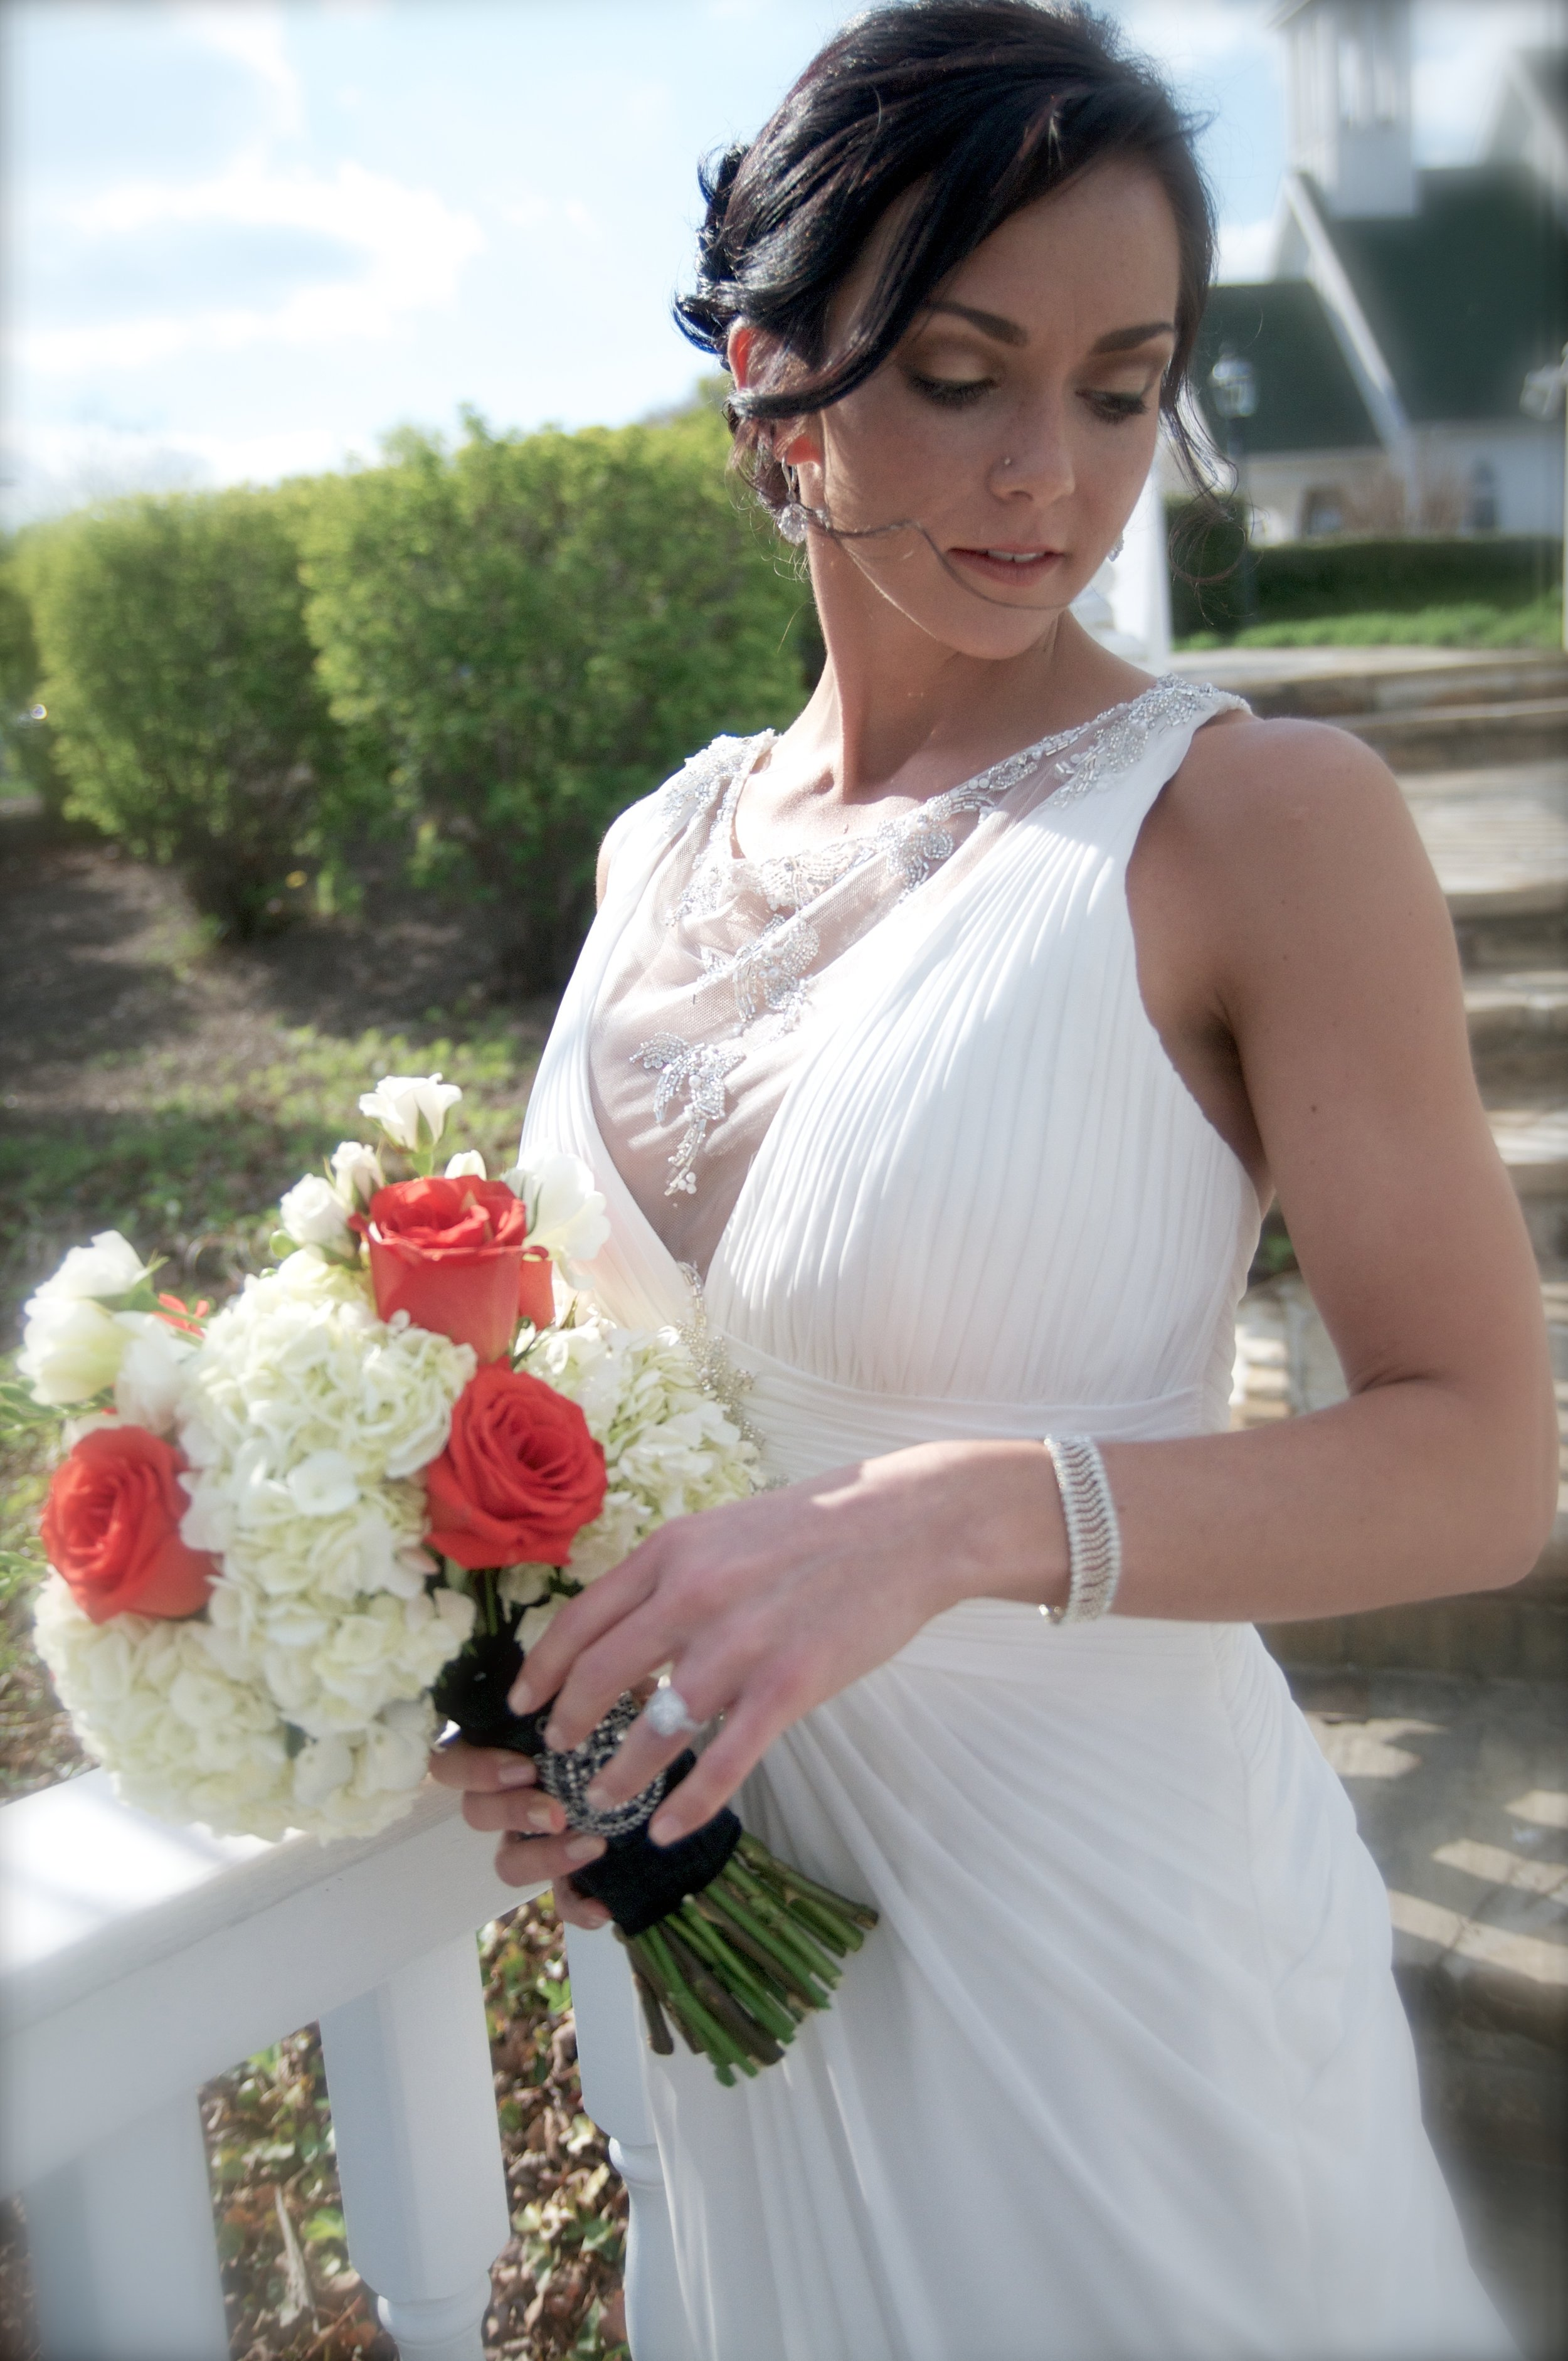 White or almost white dress is a tradition that is still very popular.